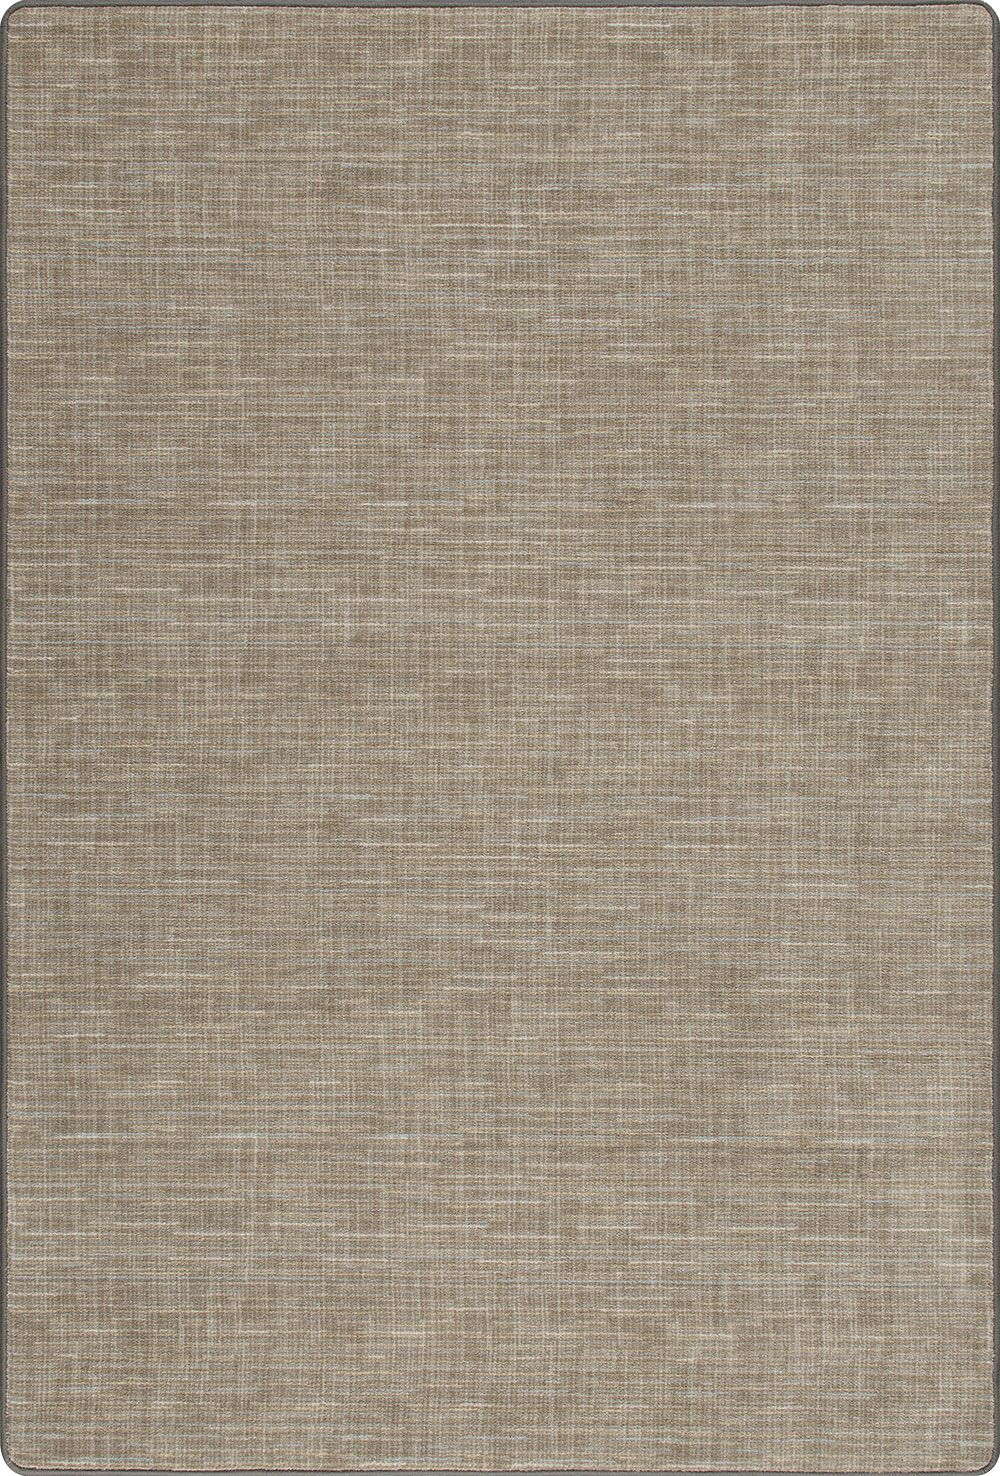 Risborough Broadcloth Silvered Taupe Area Rug Rug Size: Rectangle 2'1